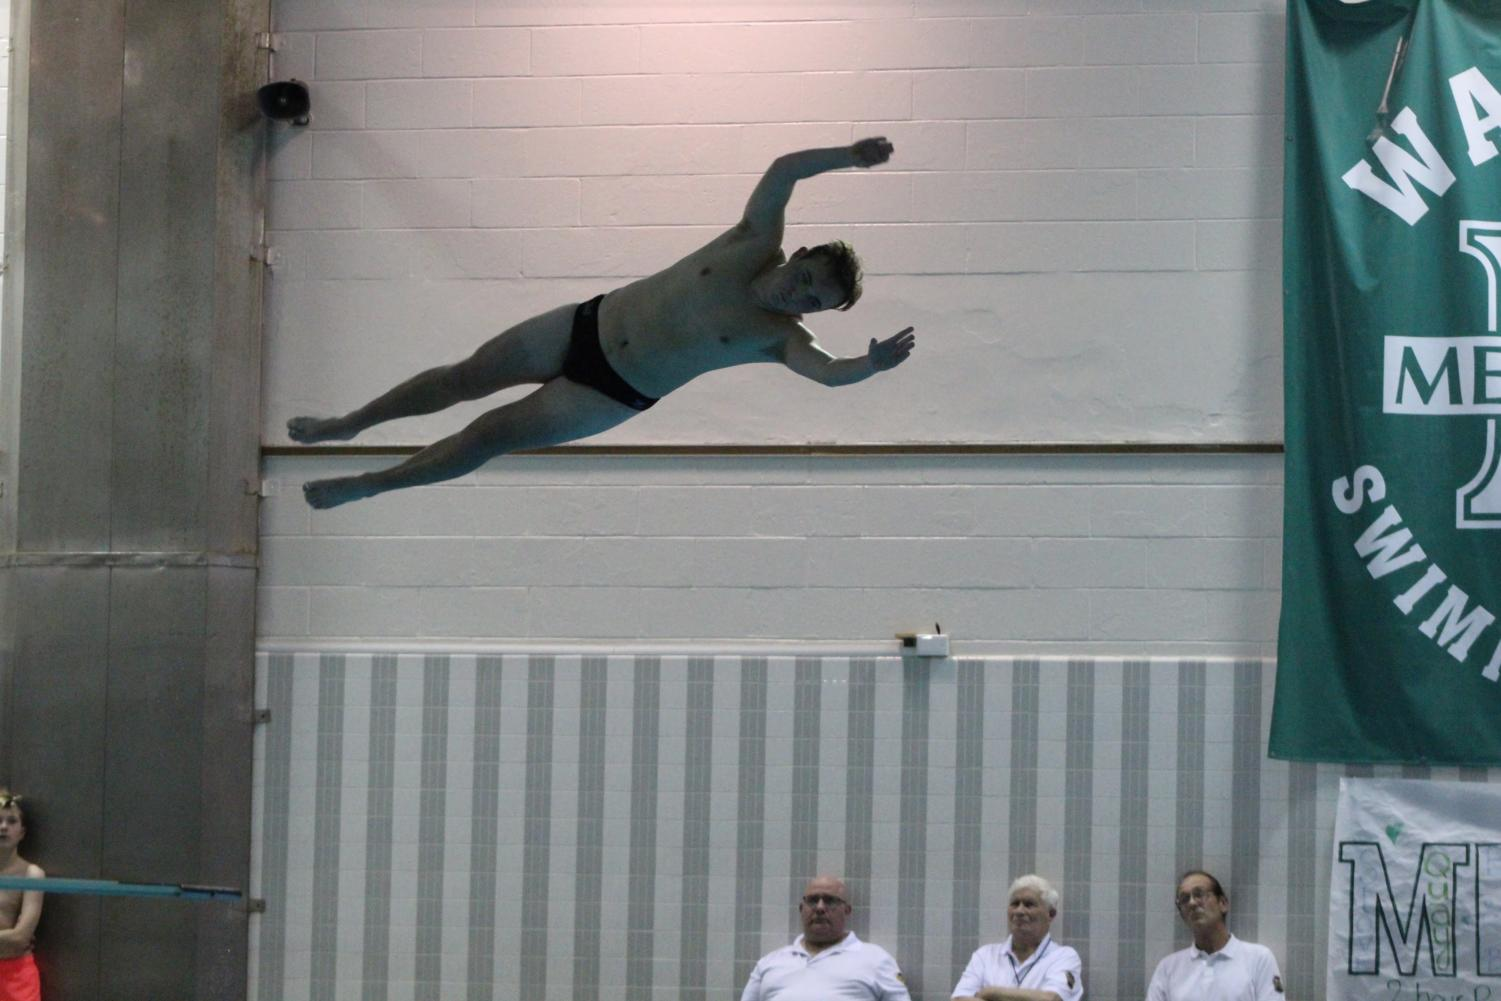 Senior+Max+Markowitz+performed+a+back+dive+half+twist+in+the+opening+portion+of+the+boys+diving+event.++%0A